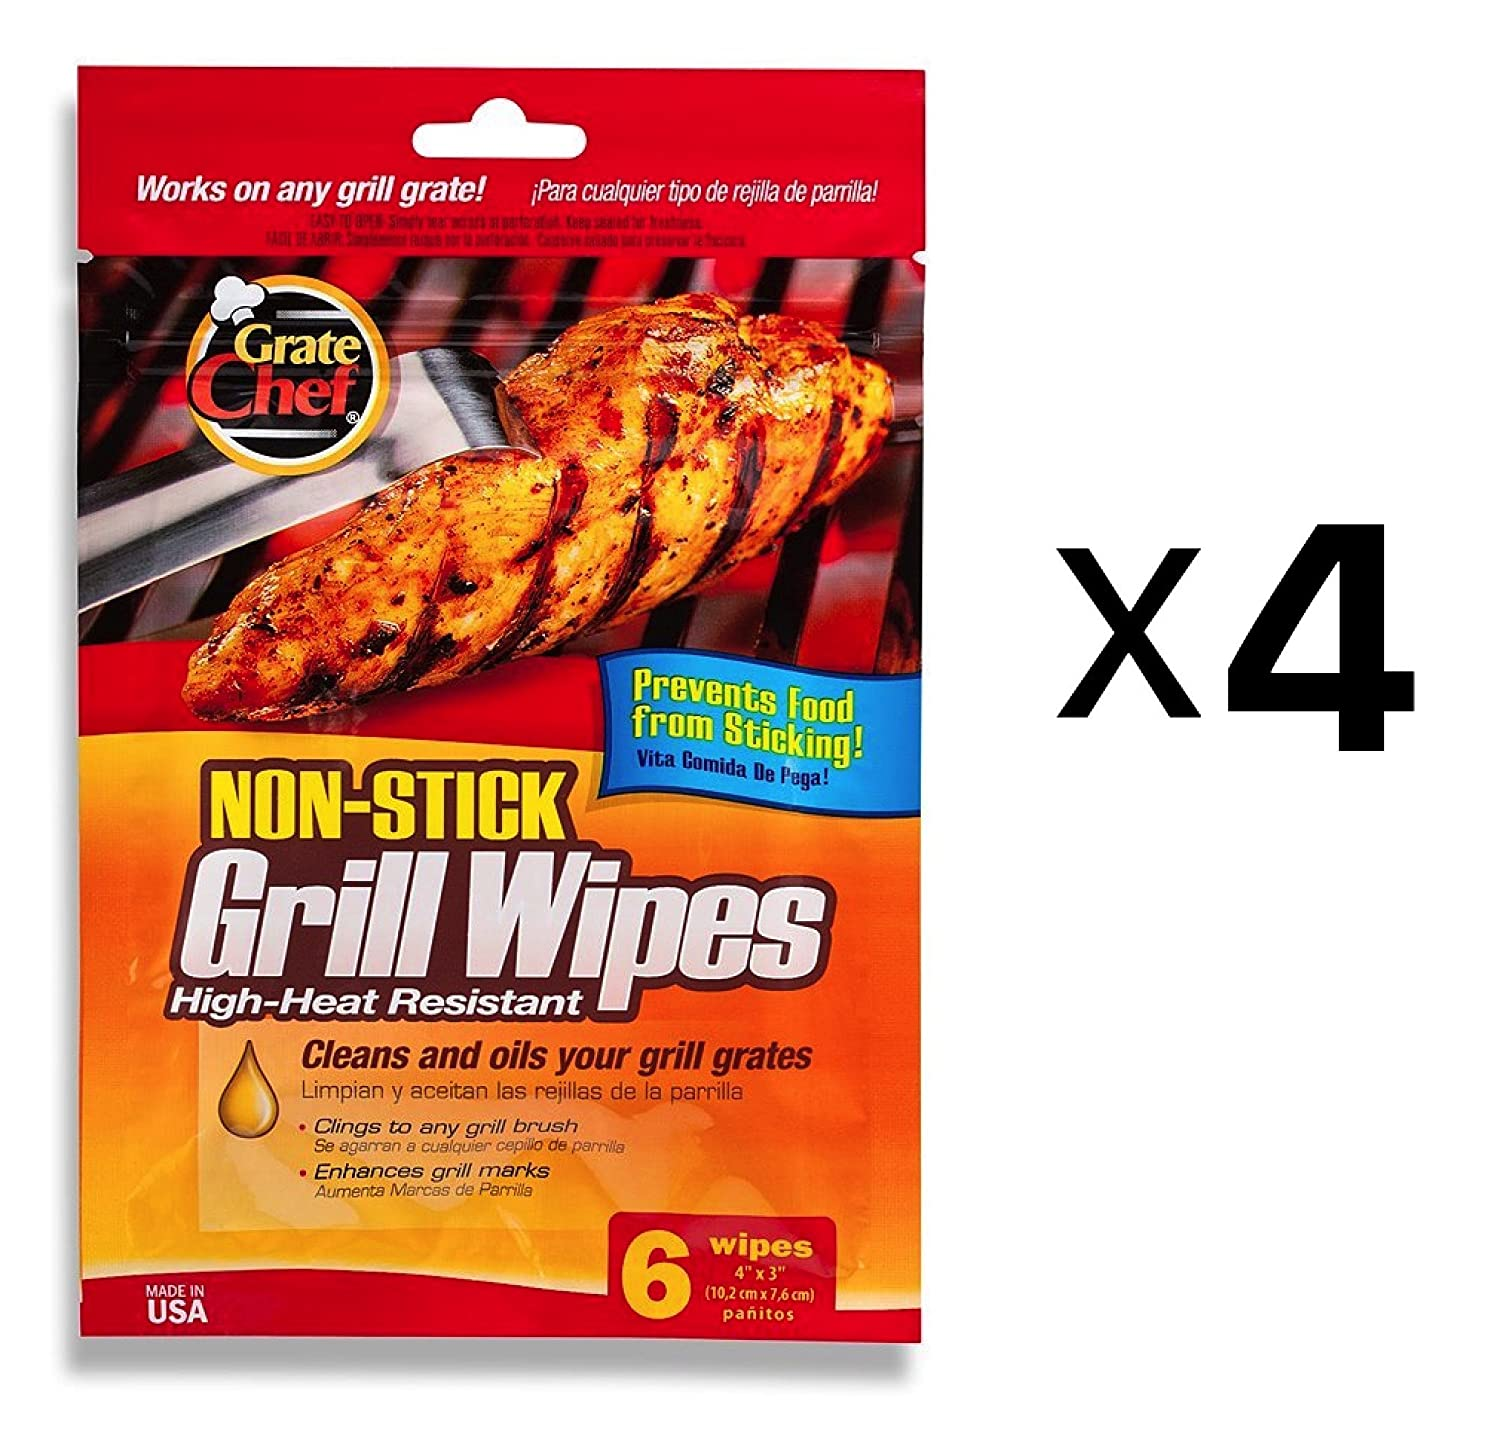 Grate Chef BBQ Grill Wipes Surface Cleaner Harold Import Nontoxic Safer (4-Pack) Harold Imports 50110